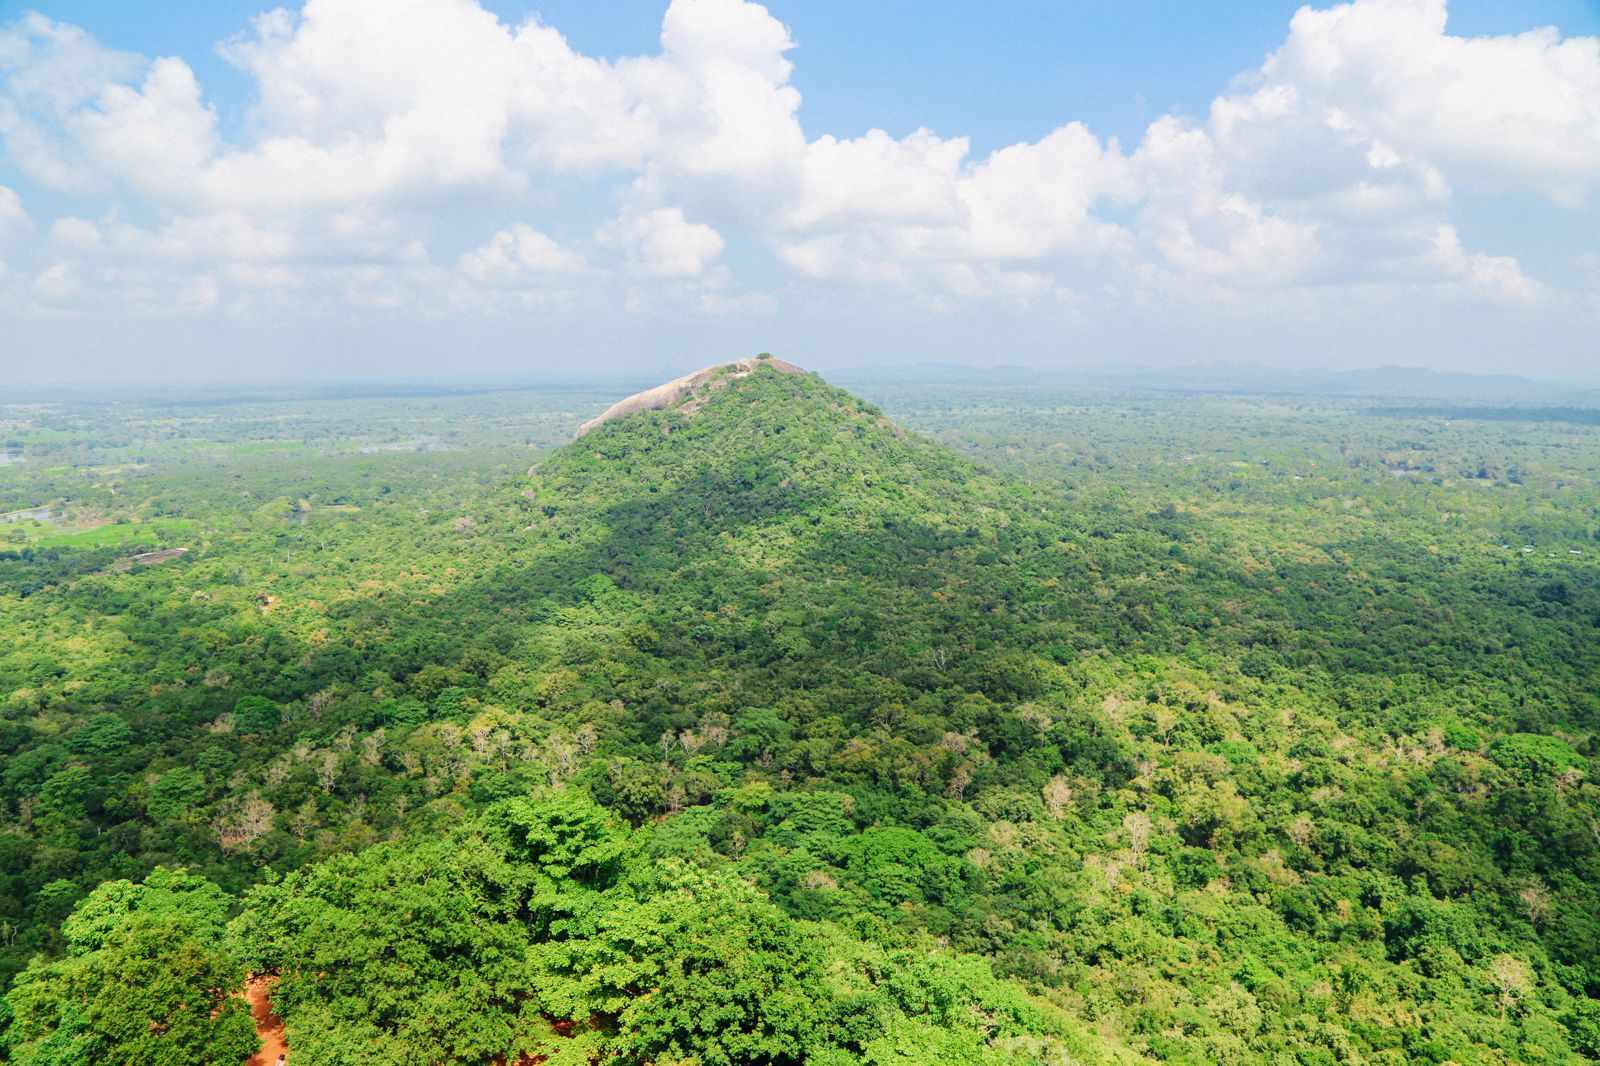 The Complete Guide To Climbing Sri Lanka's UNESCO World Heritage Site Of Sigiriya - Lion Rock (62)